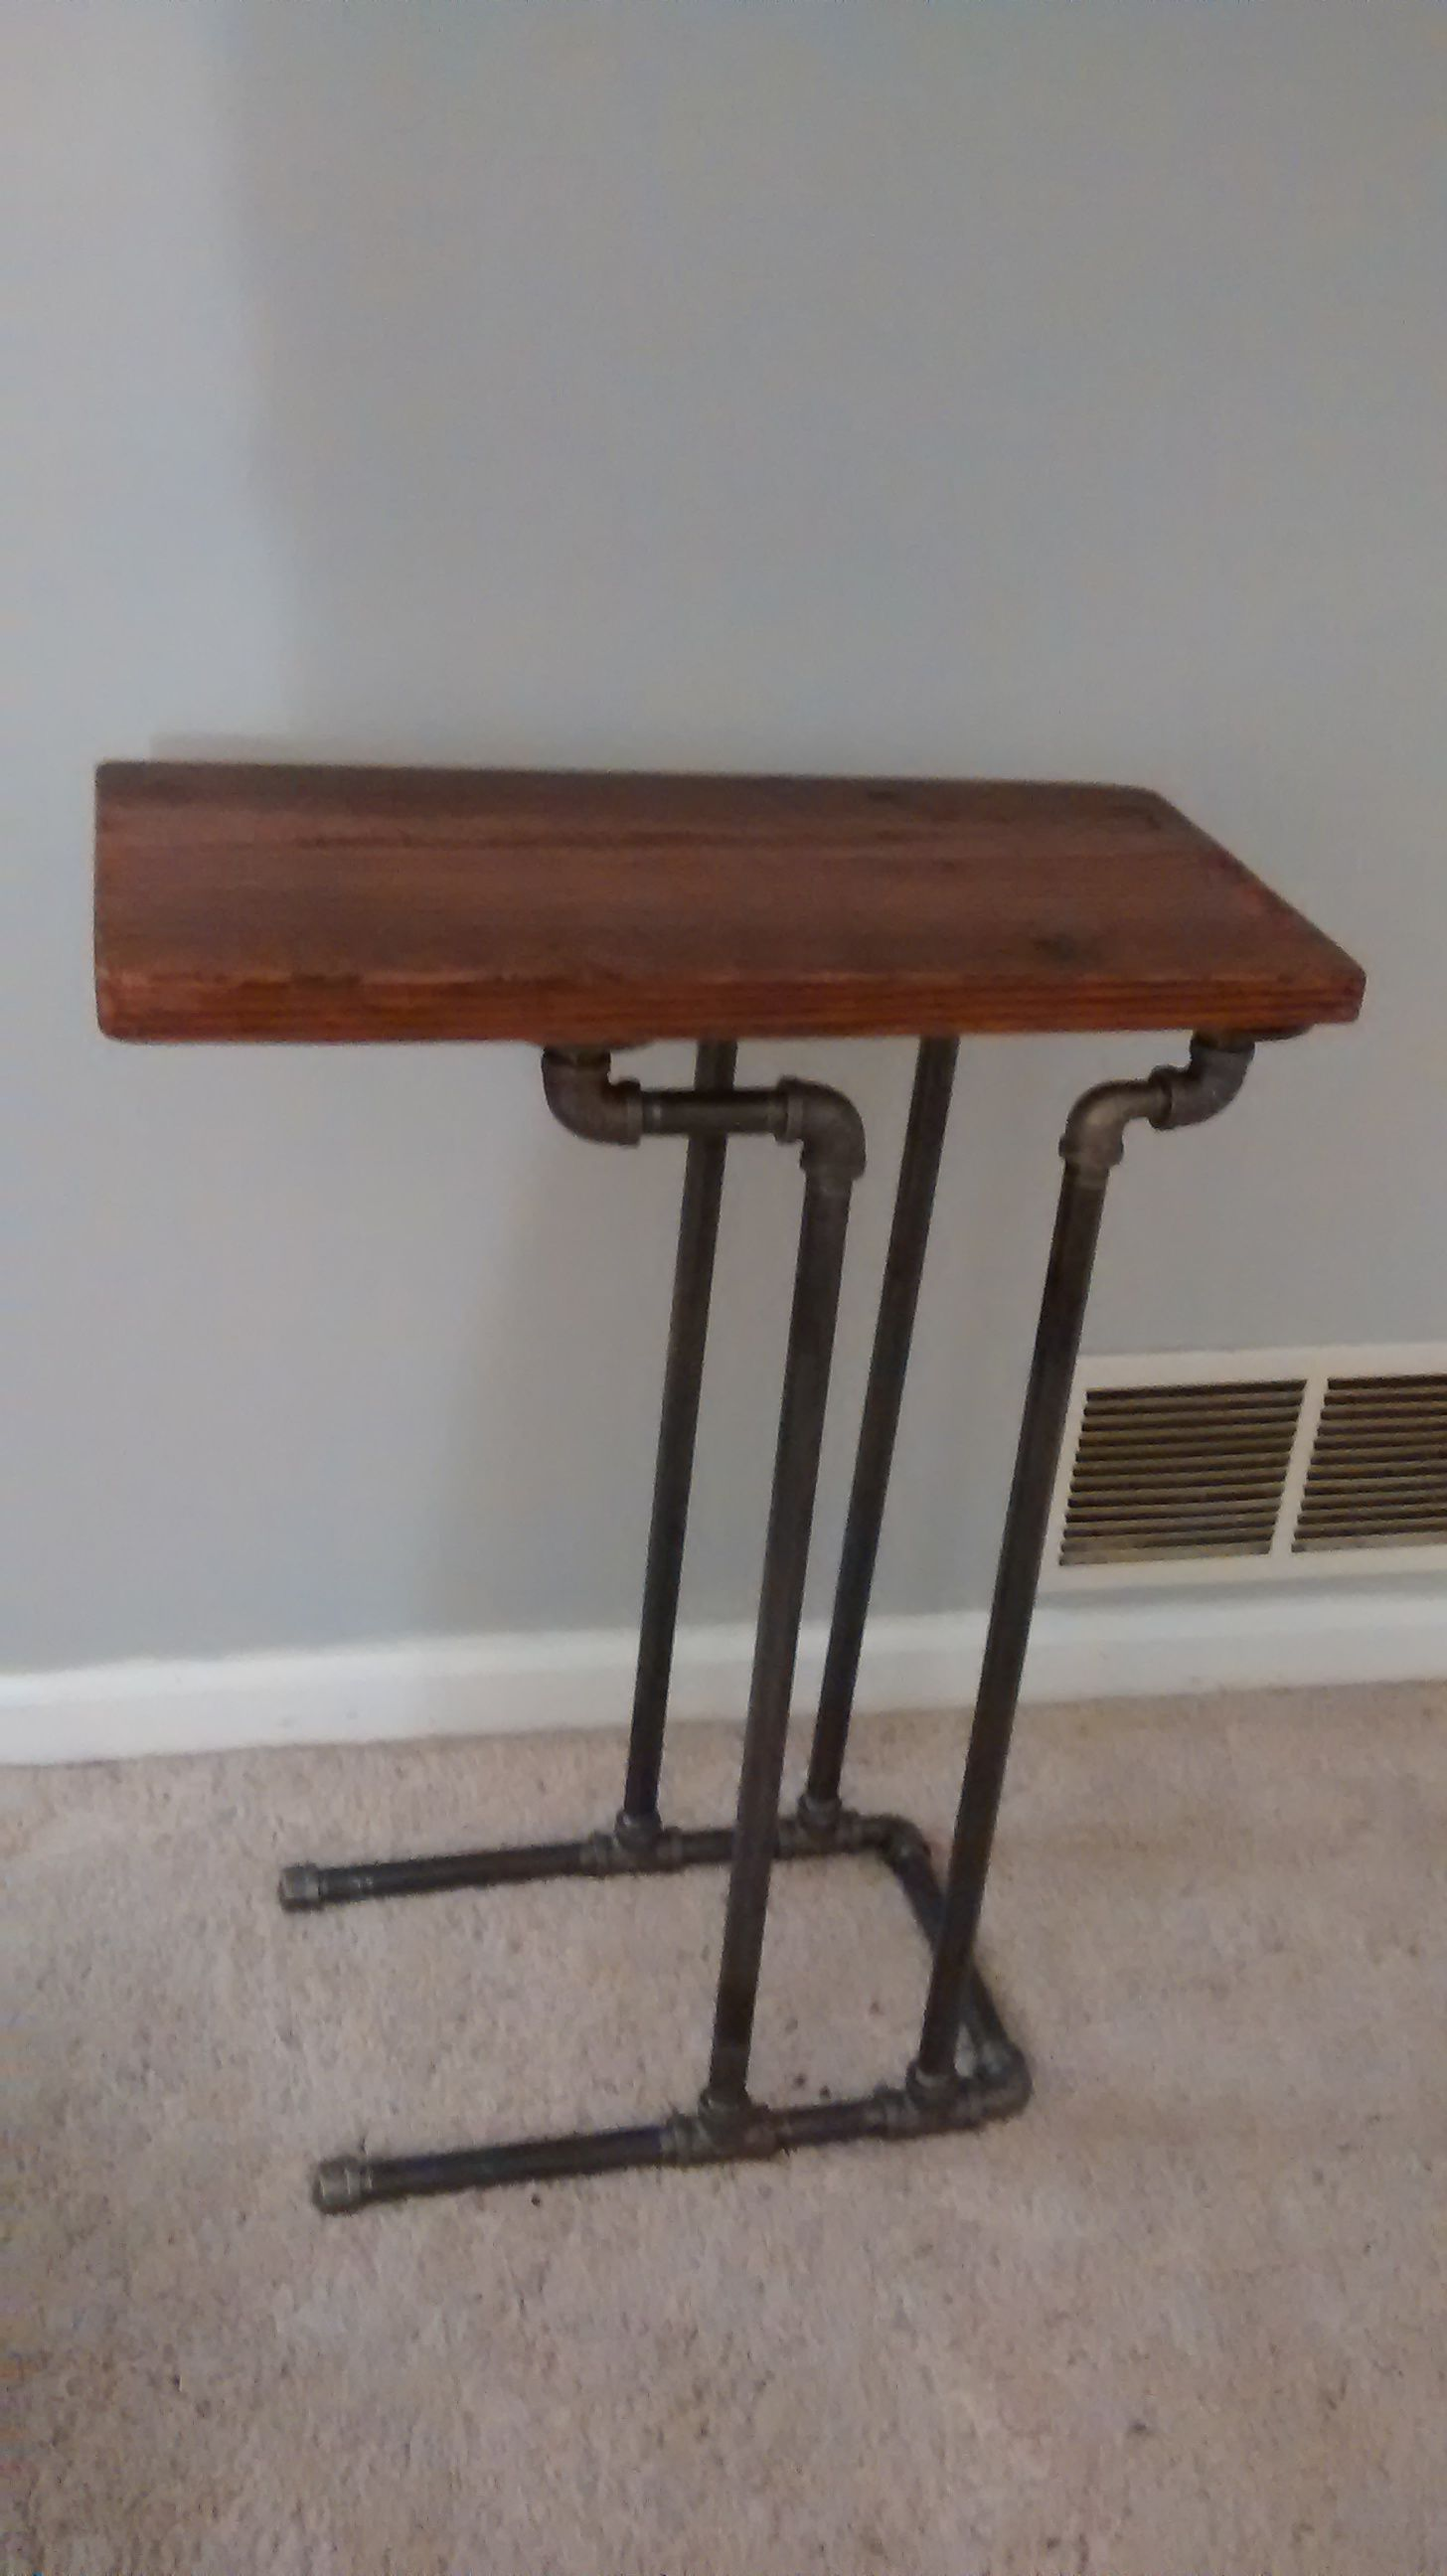 Barn Wood & Pipe End Table / TV Tray: Plained, Cut, Sanded